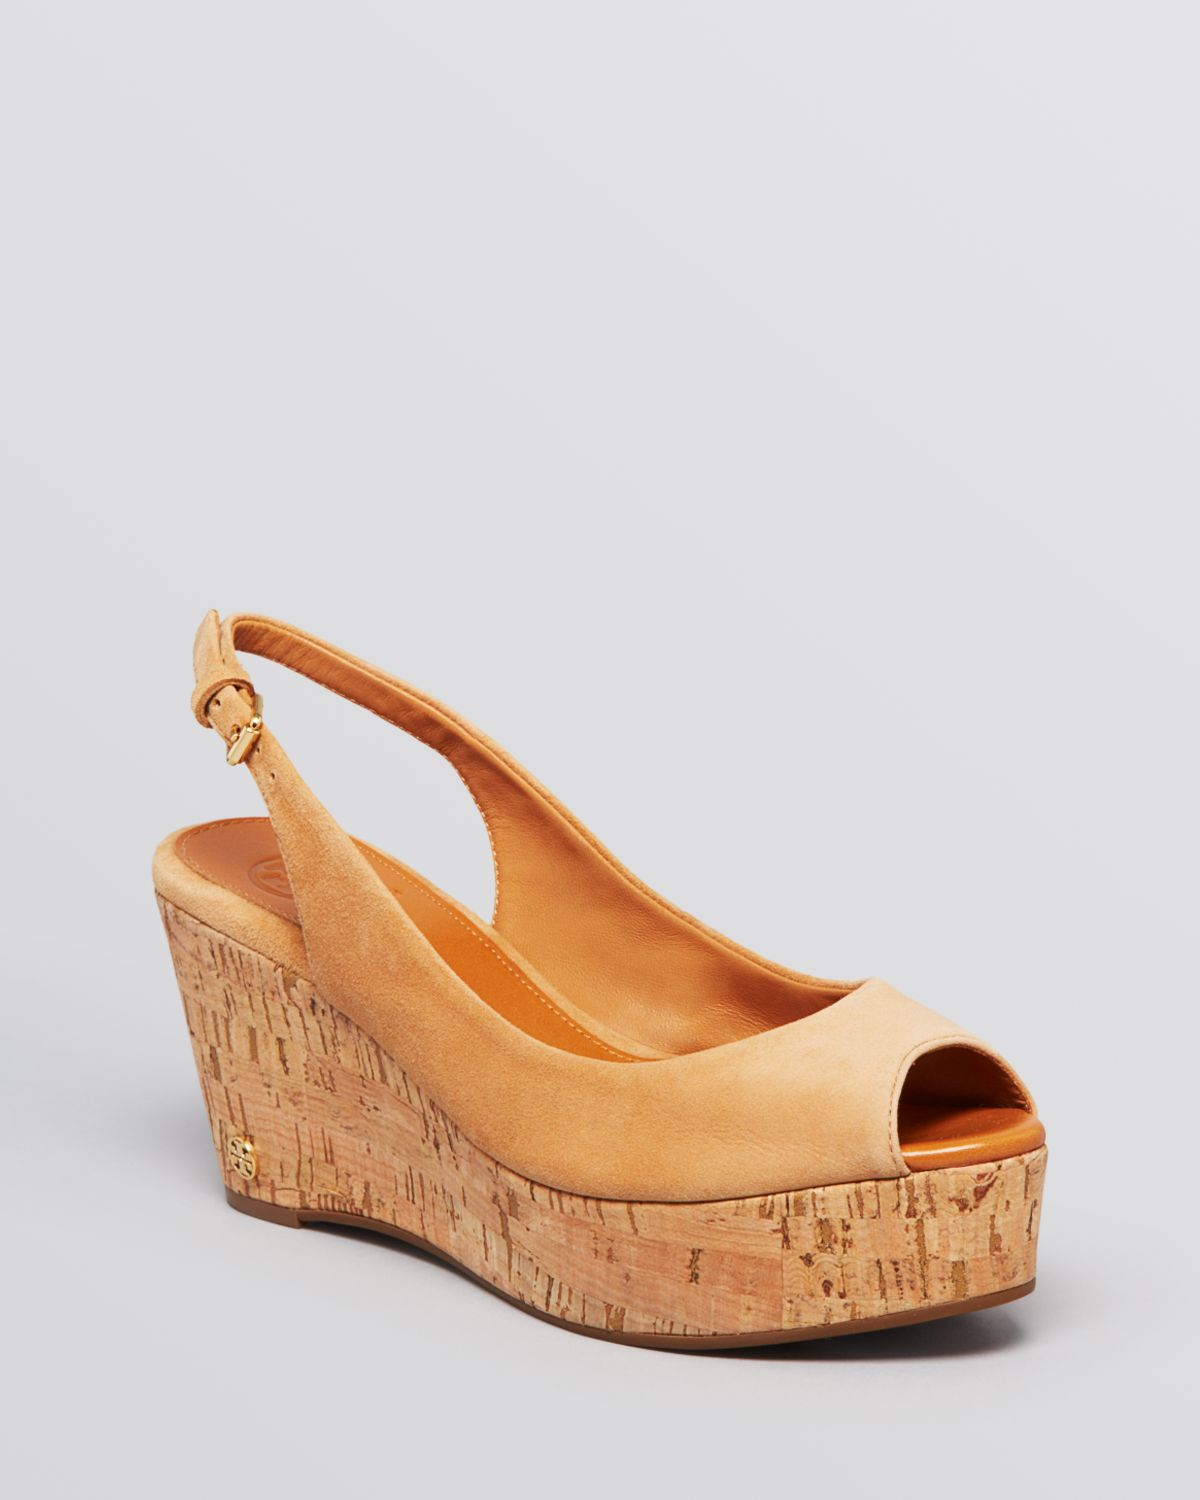 6a2c8f28242 Lyst - Tory Burch Platform Wedge Sandals - Rosalind in Brown